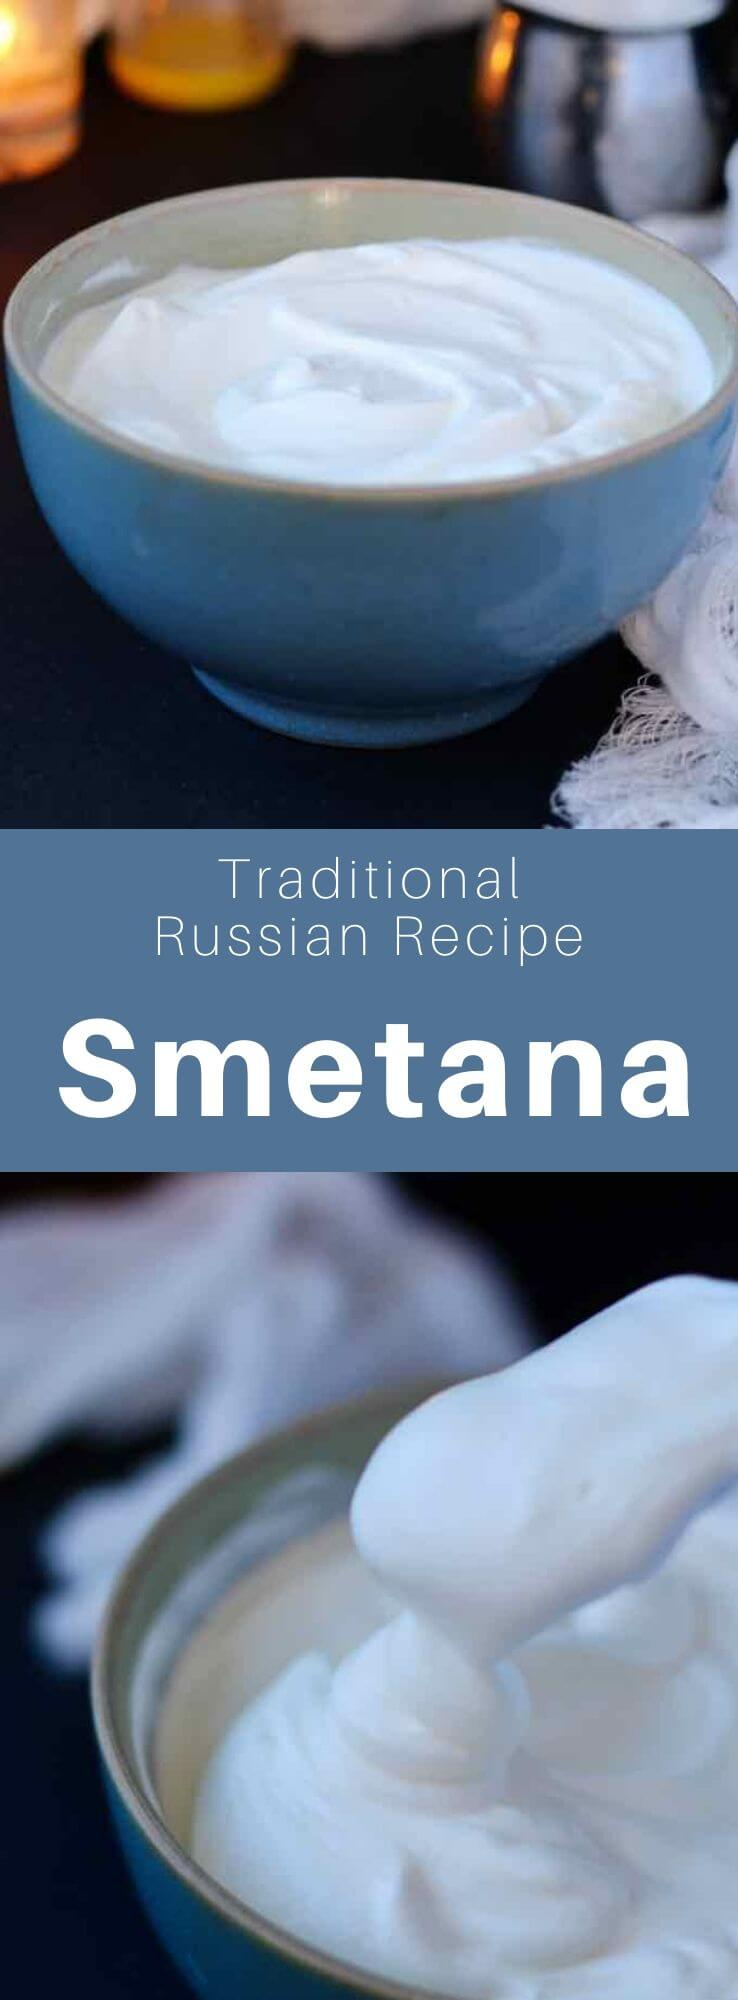 Smetana is a creamy dairy product subjected to lactic fermentation, widely used in Russia and the region, that is similar to sour cream in Anglo-Saxon countries. #Russia #Poland #Russian #Polish #RussianRecipe #PolishRecipe #RussianFood #PolishFood #WorldCuisine #196flavors